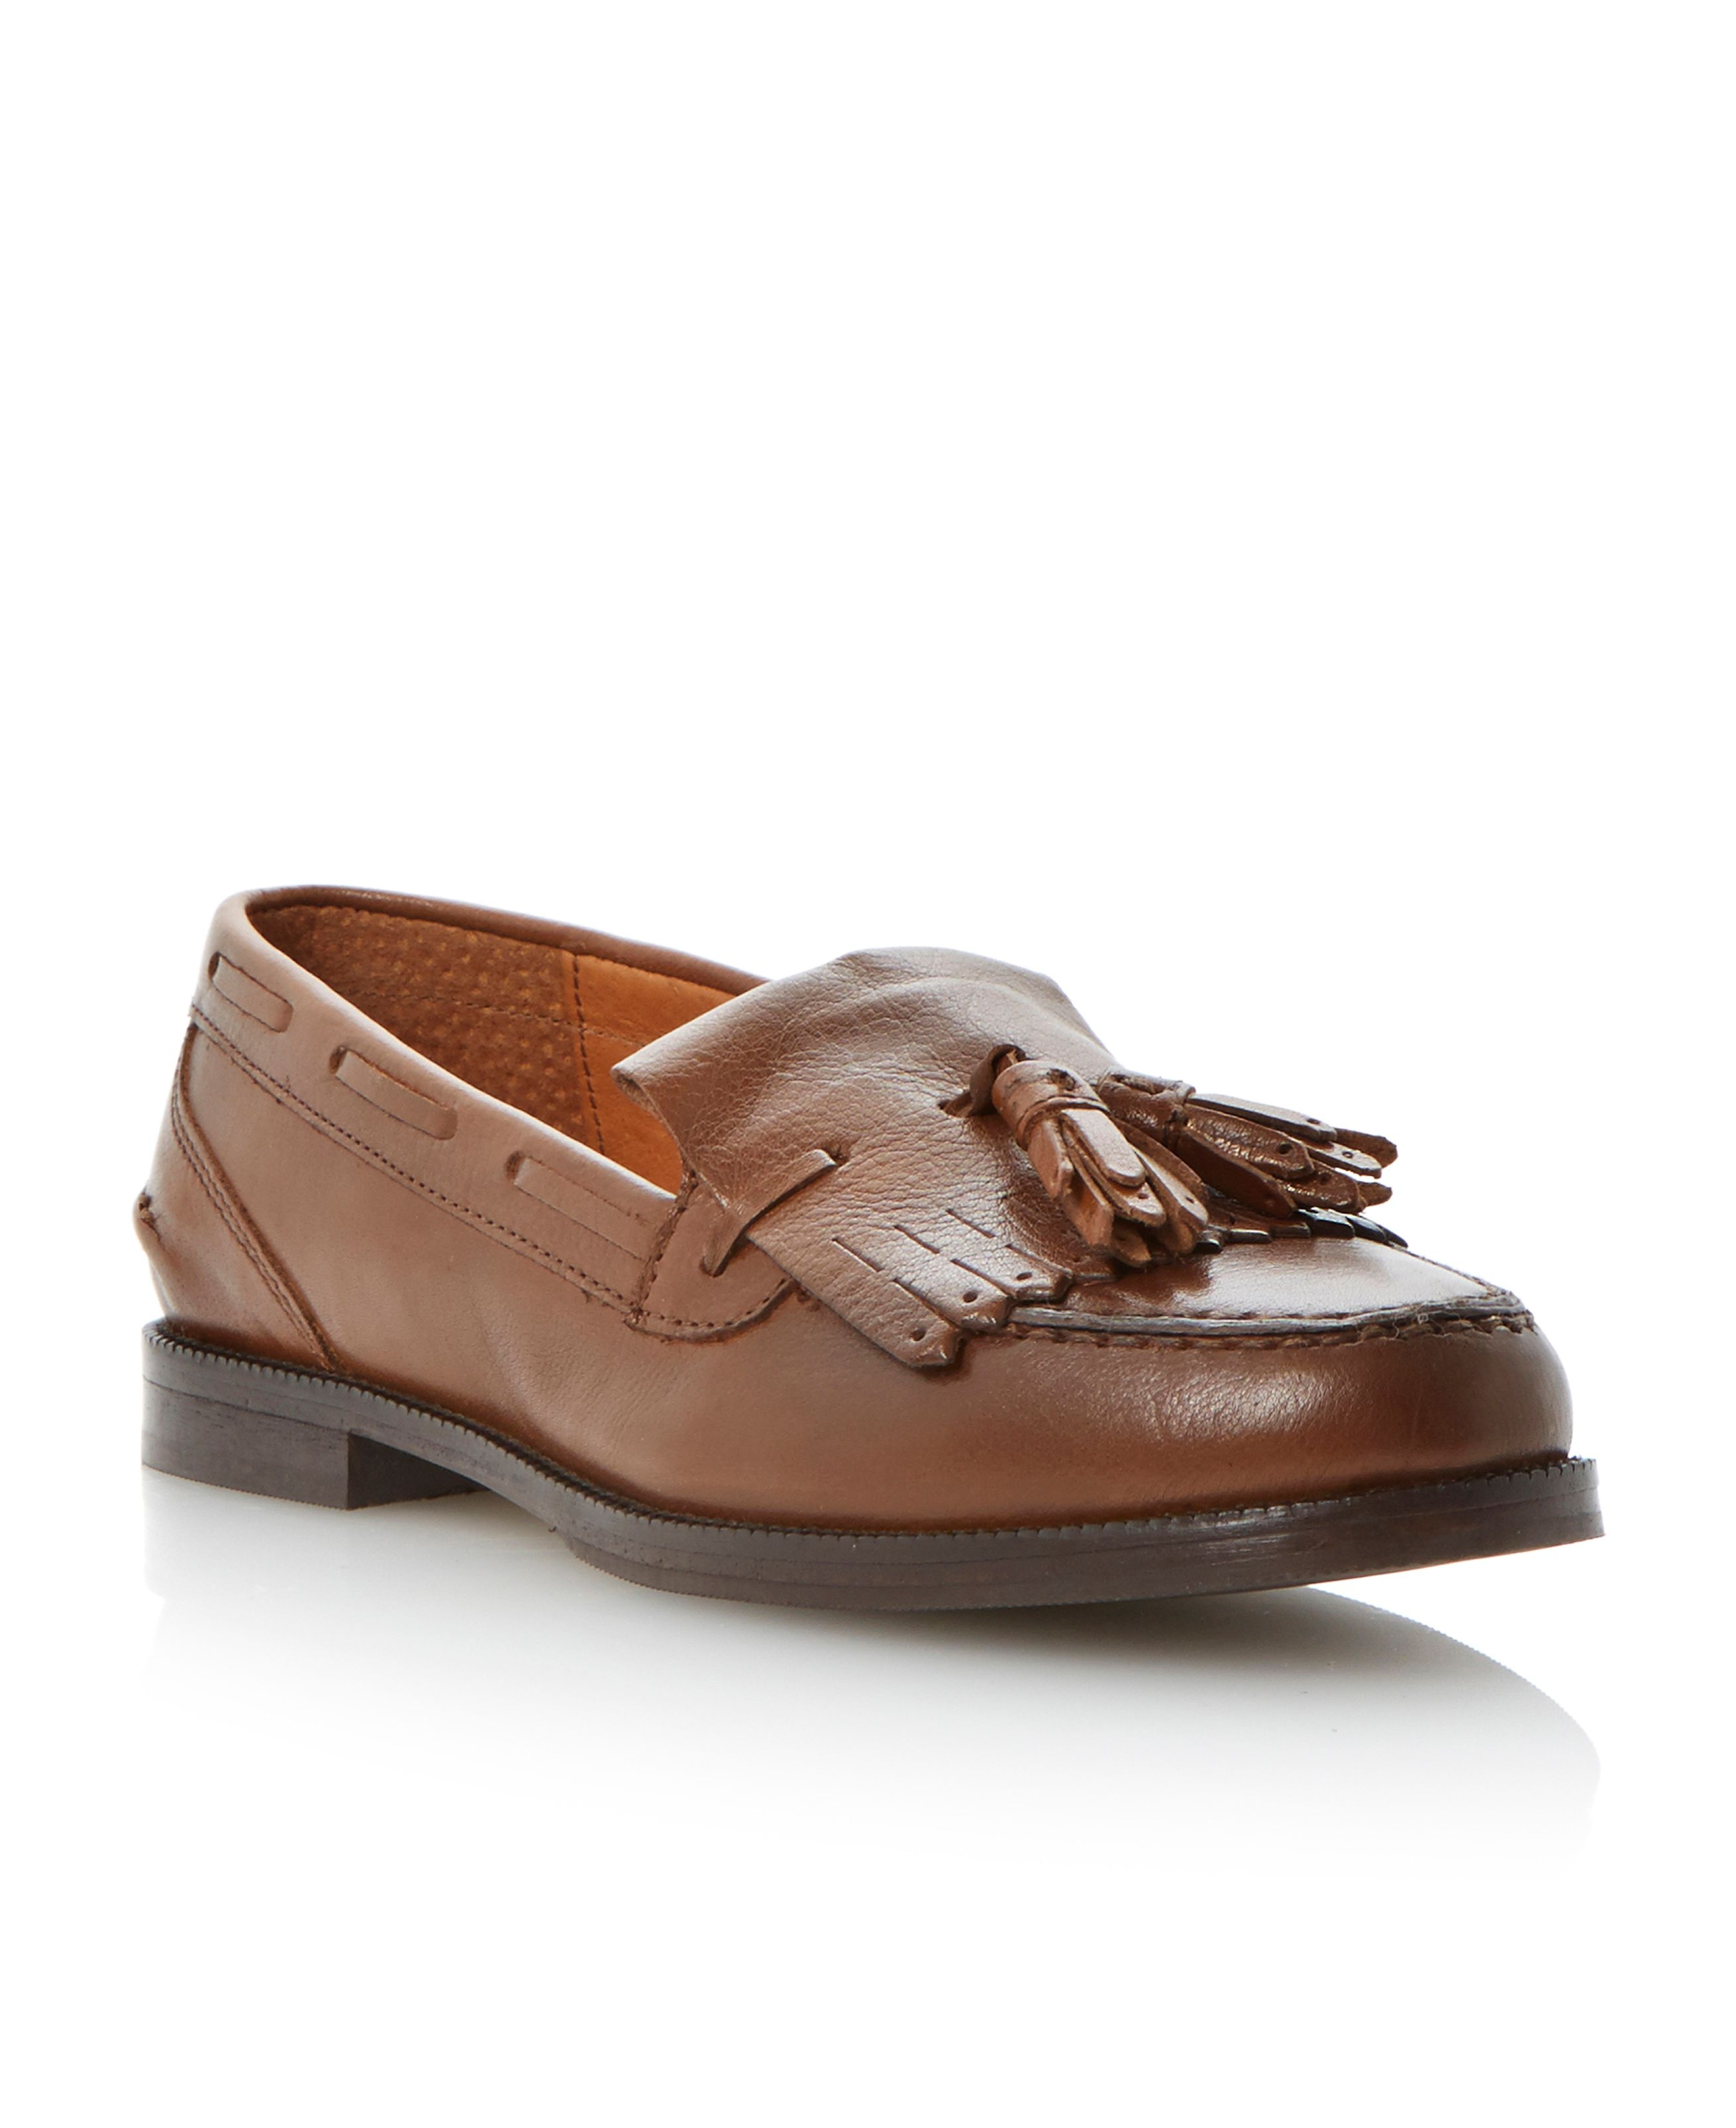 Laine leather block heel round toe loafer shoes